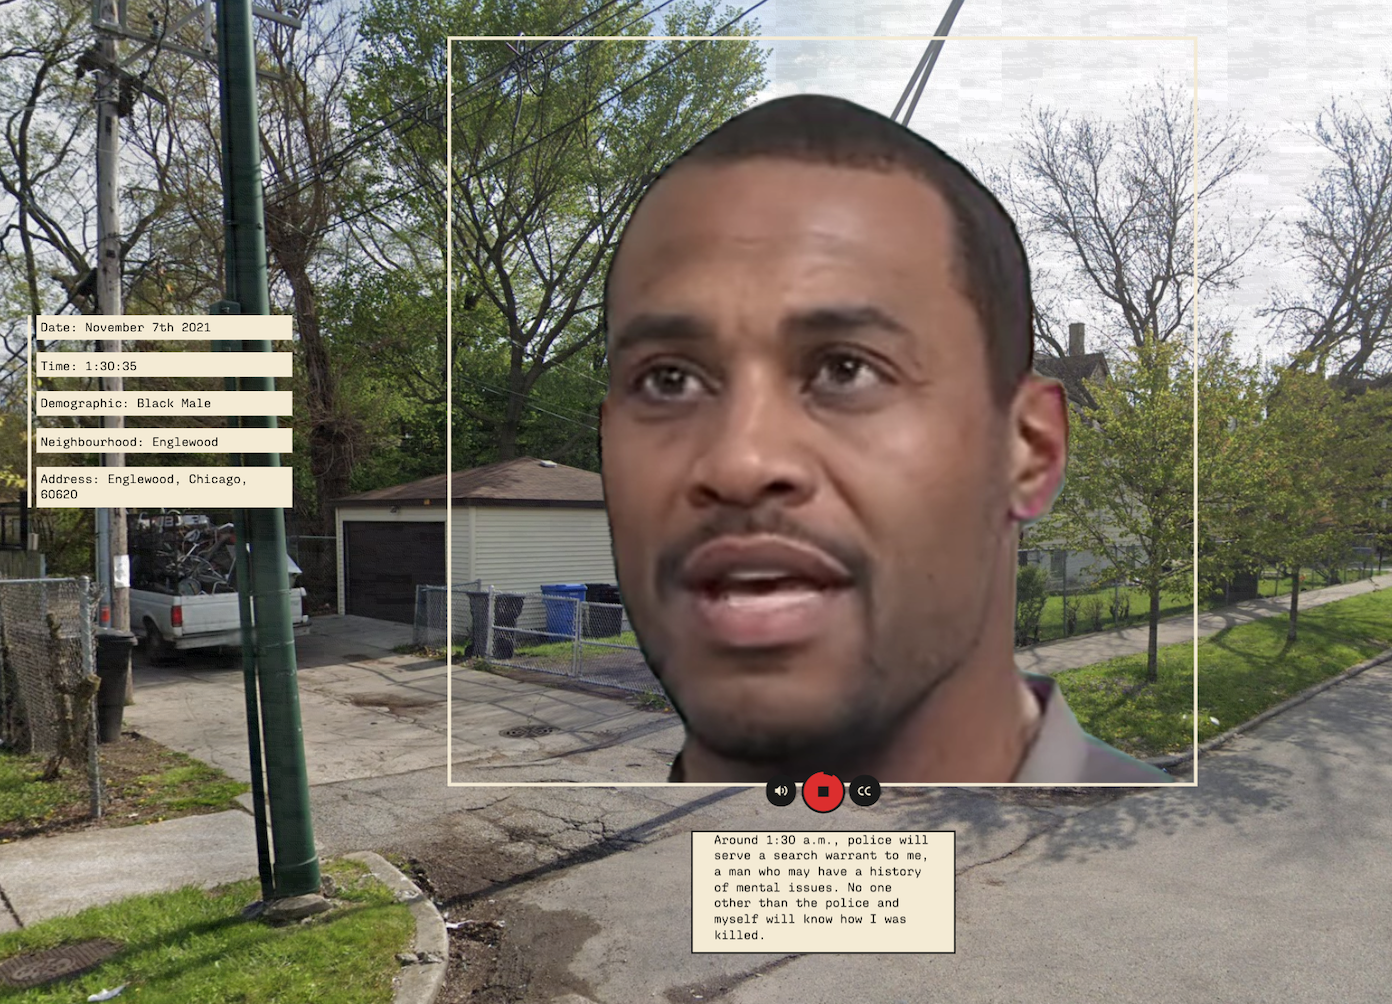 Future Wakes uses Style-GAN ADA-2 and first-order modelling to generate the faces.